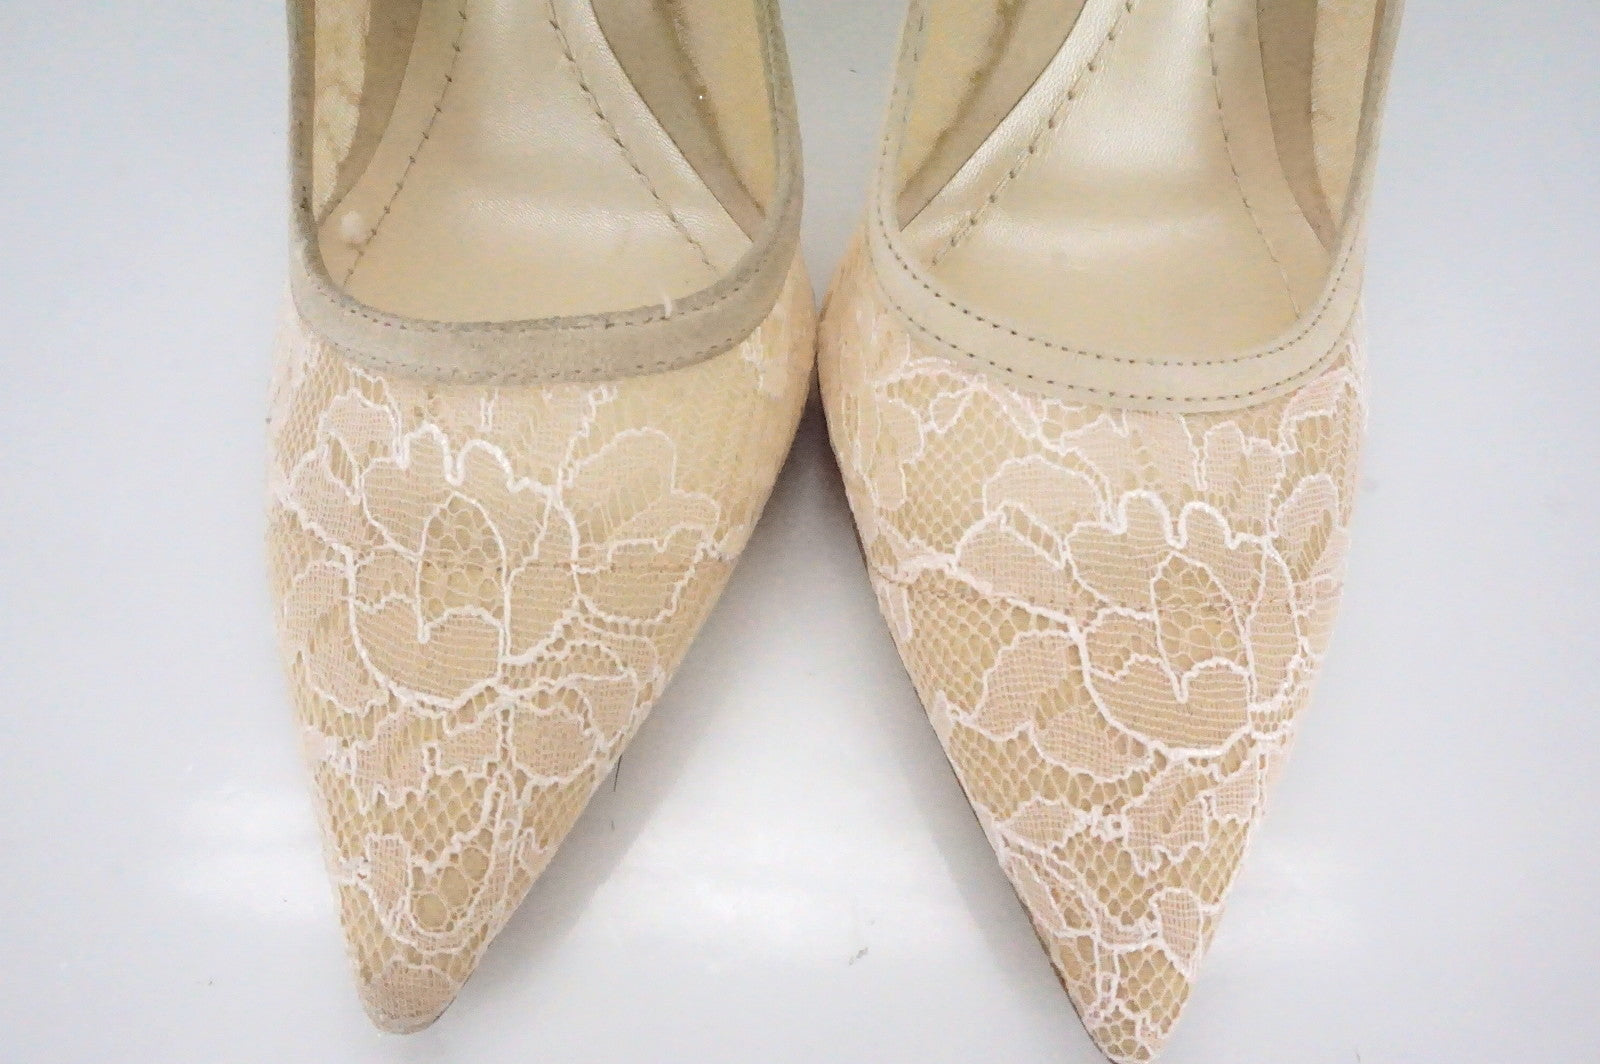 Christian Dior Nude Lace Mesh Lingerie Pointy Toe Pumps Size 36 NIB $830